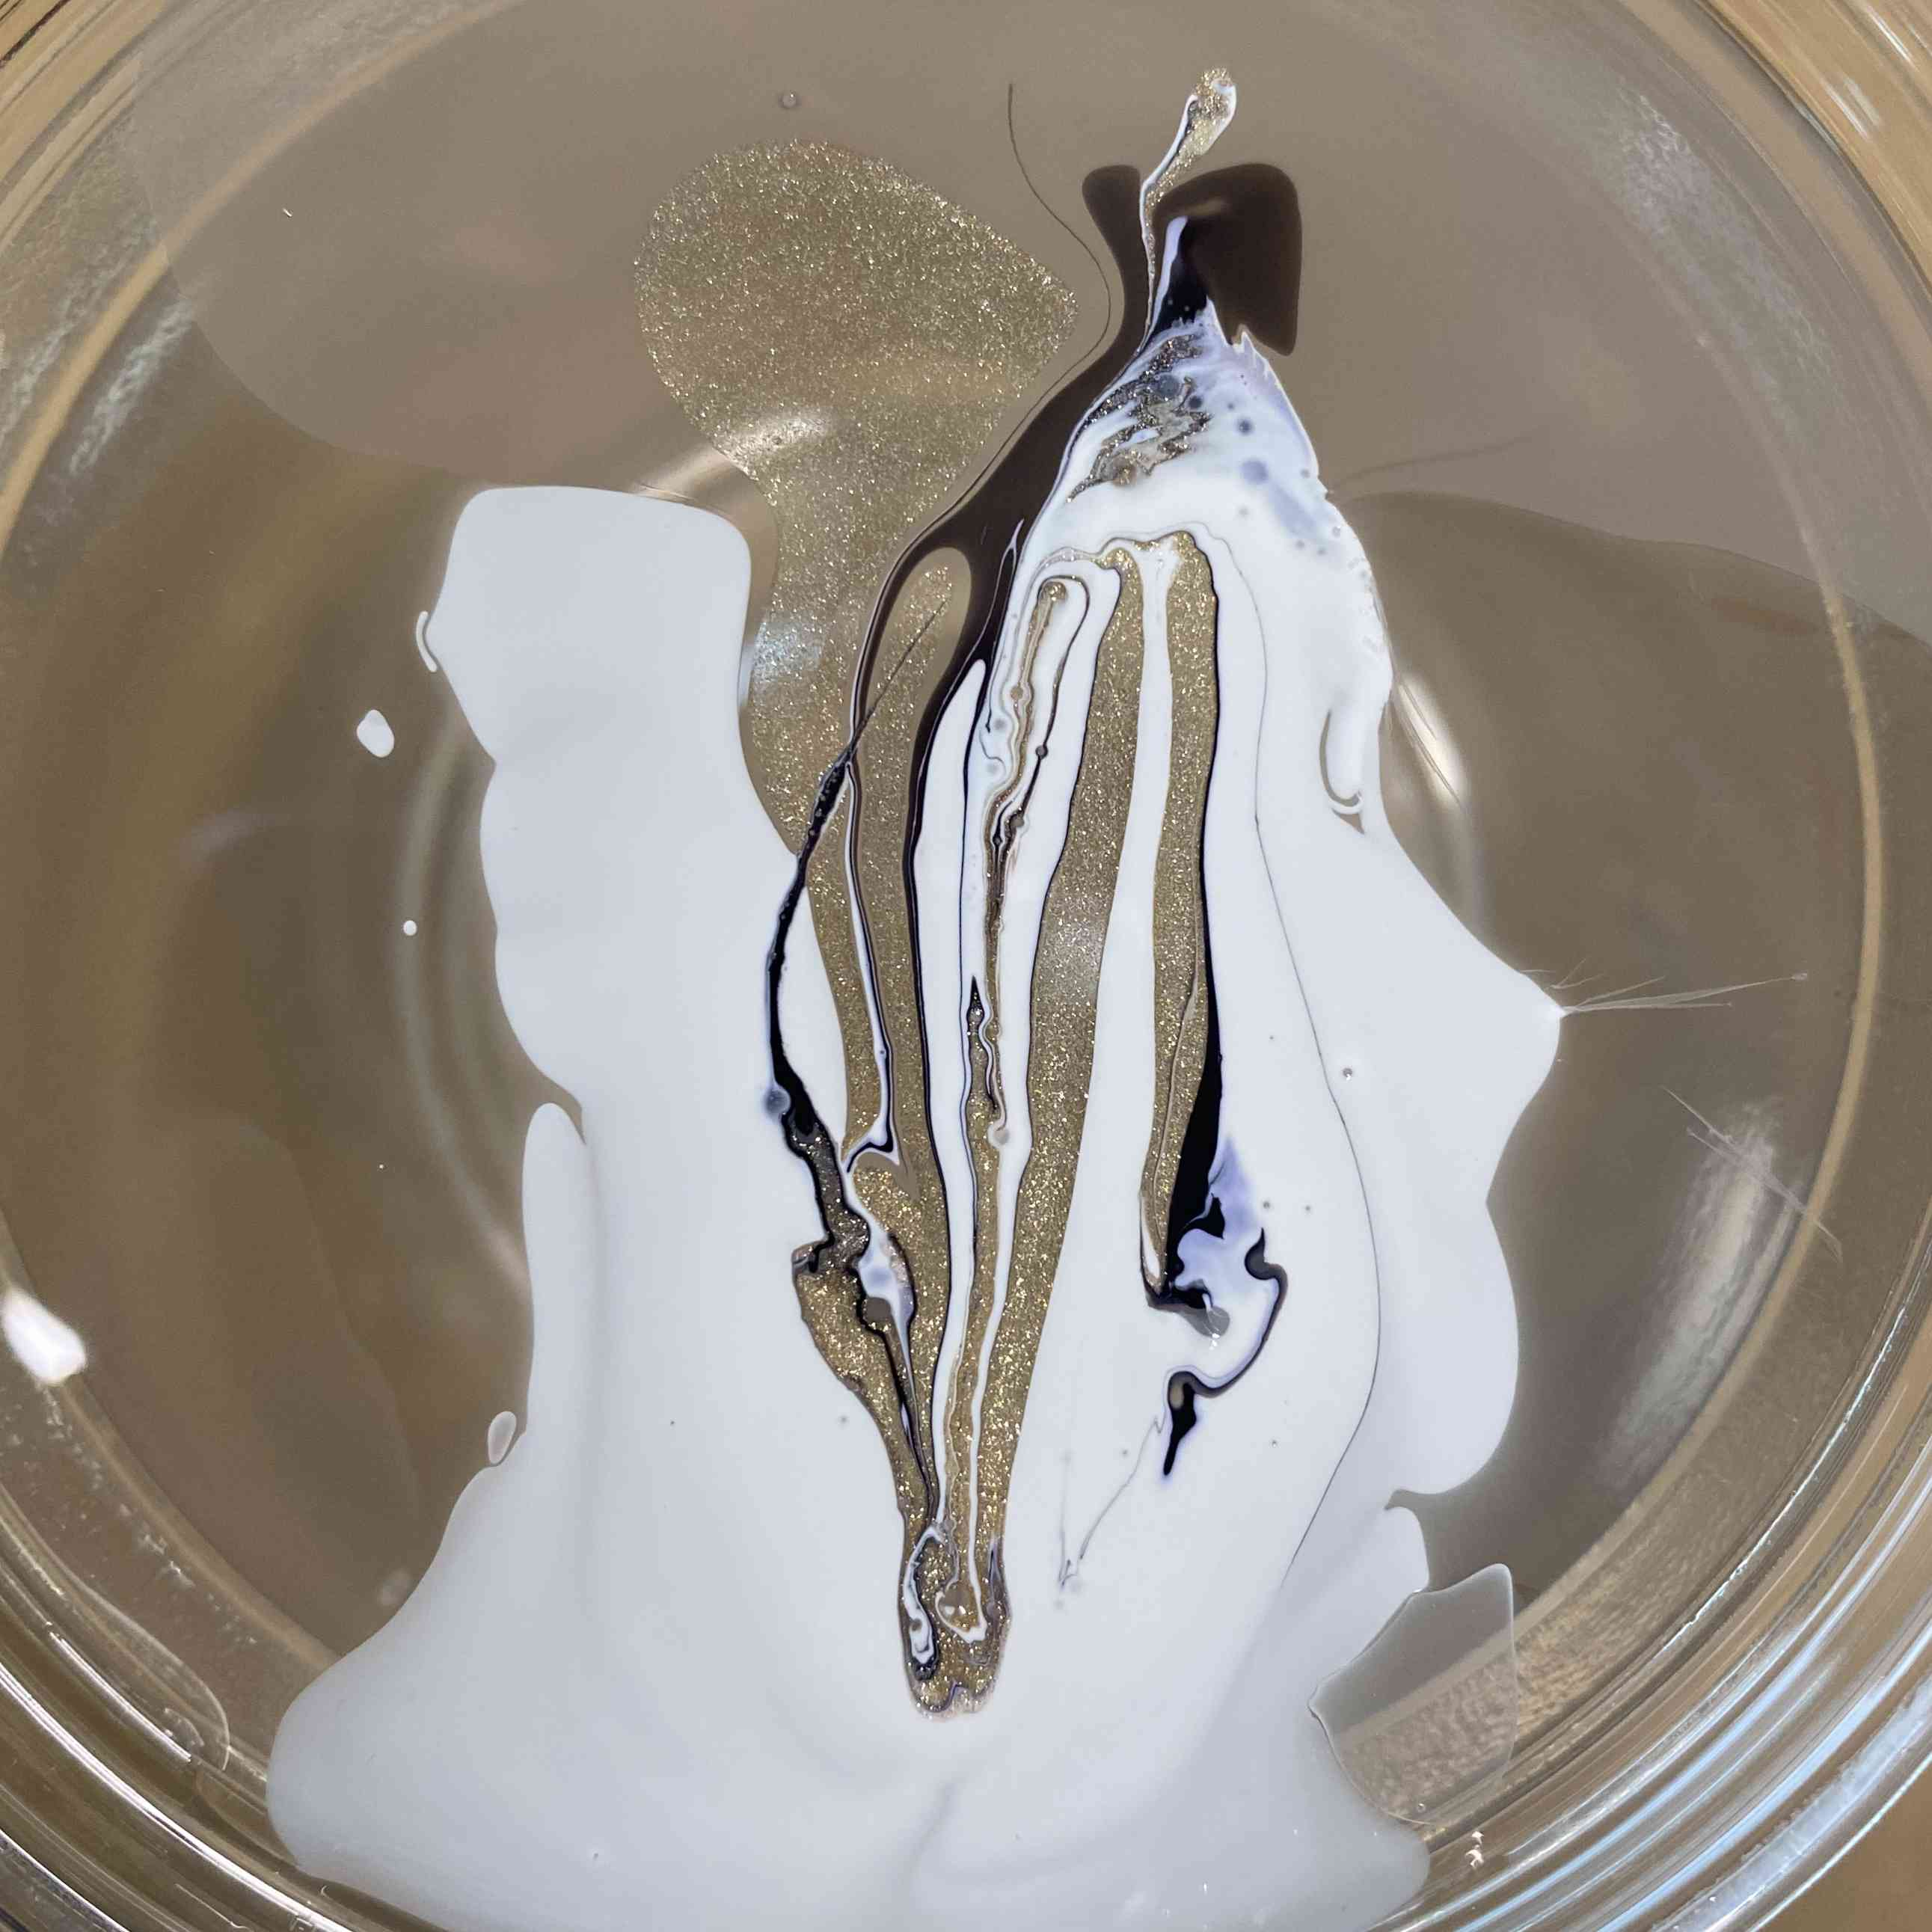 Swirled nail polish in a cup of water.